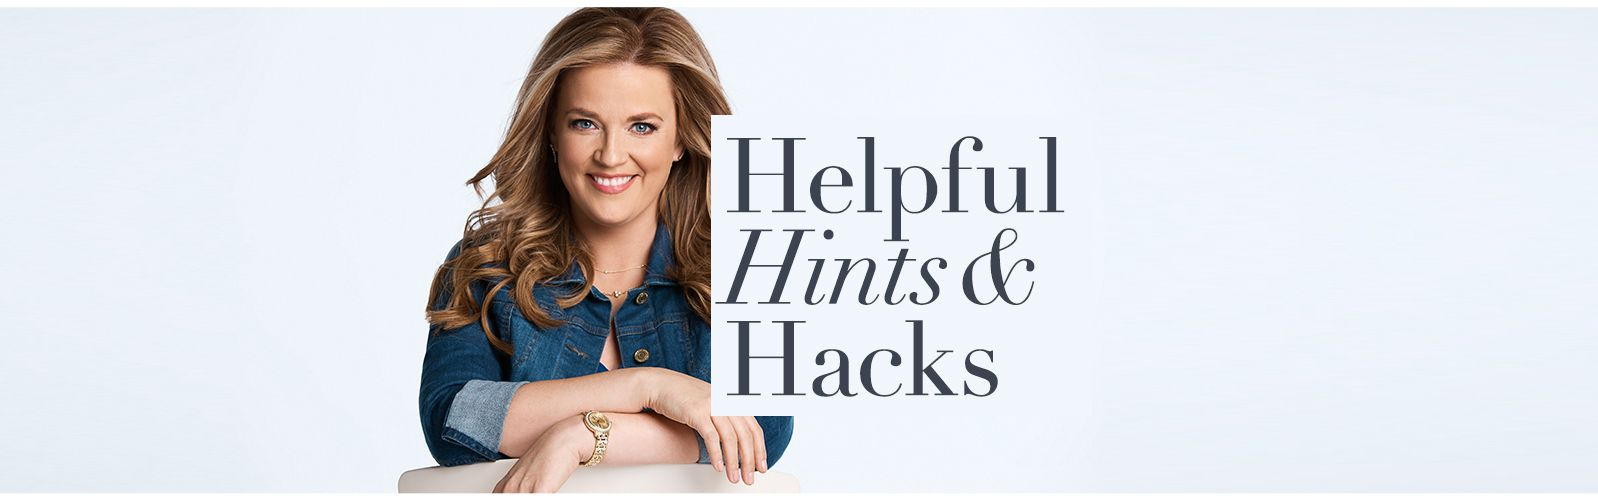 Helpful Hints & Hacks